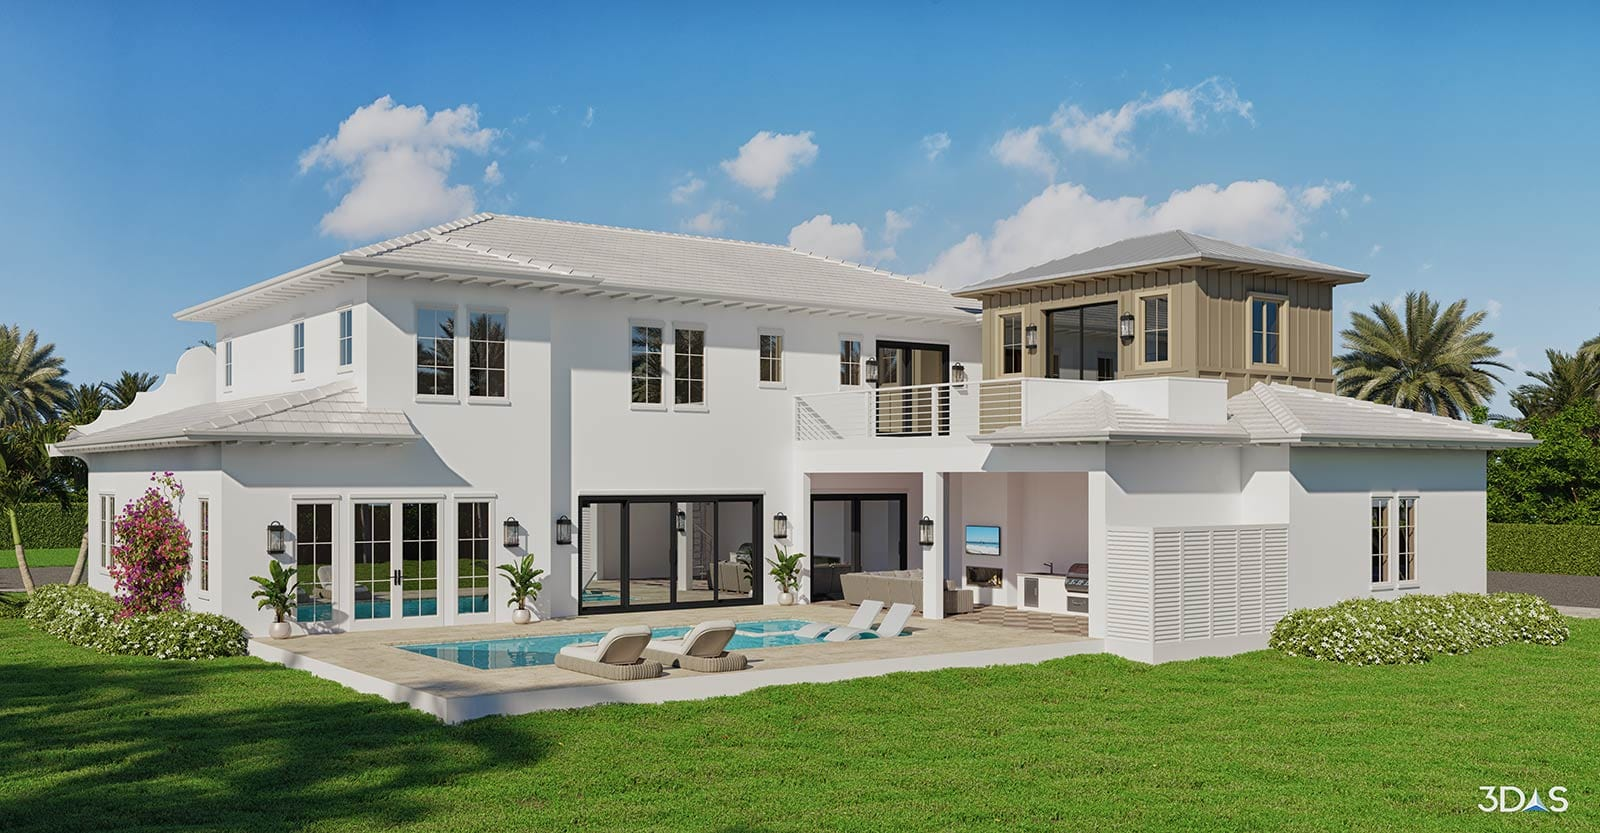 2-Story 3D Residential Home with Pool and Grill Area